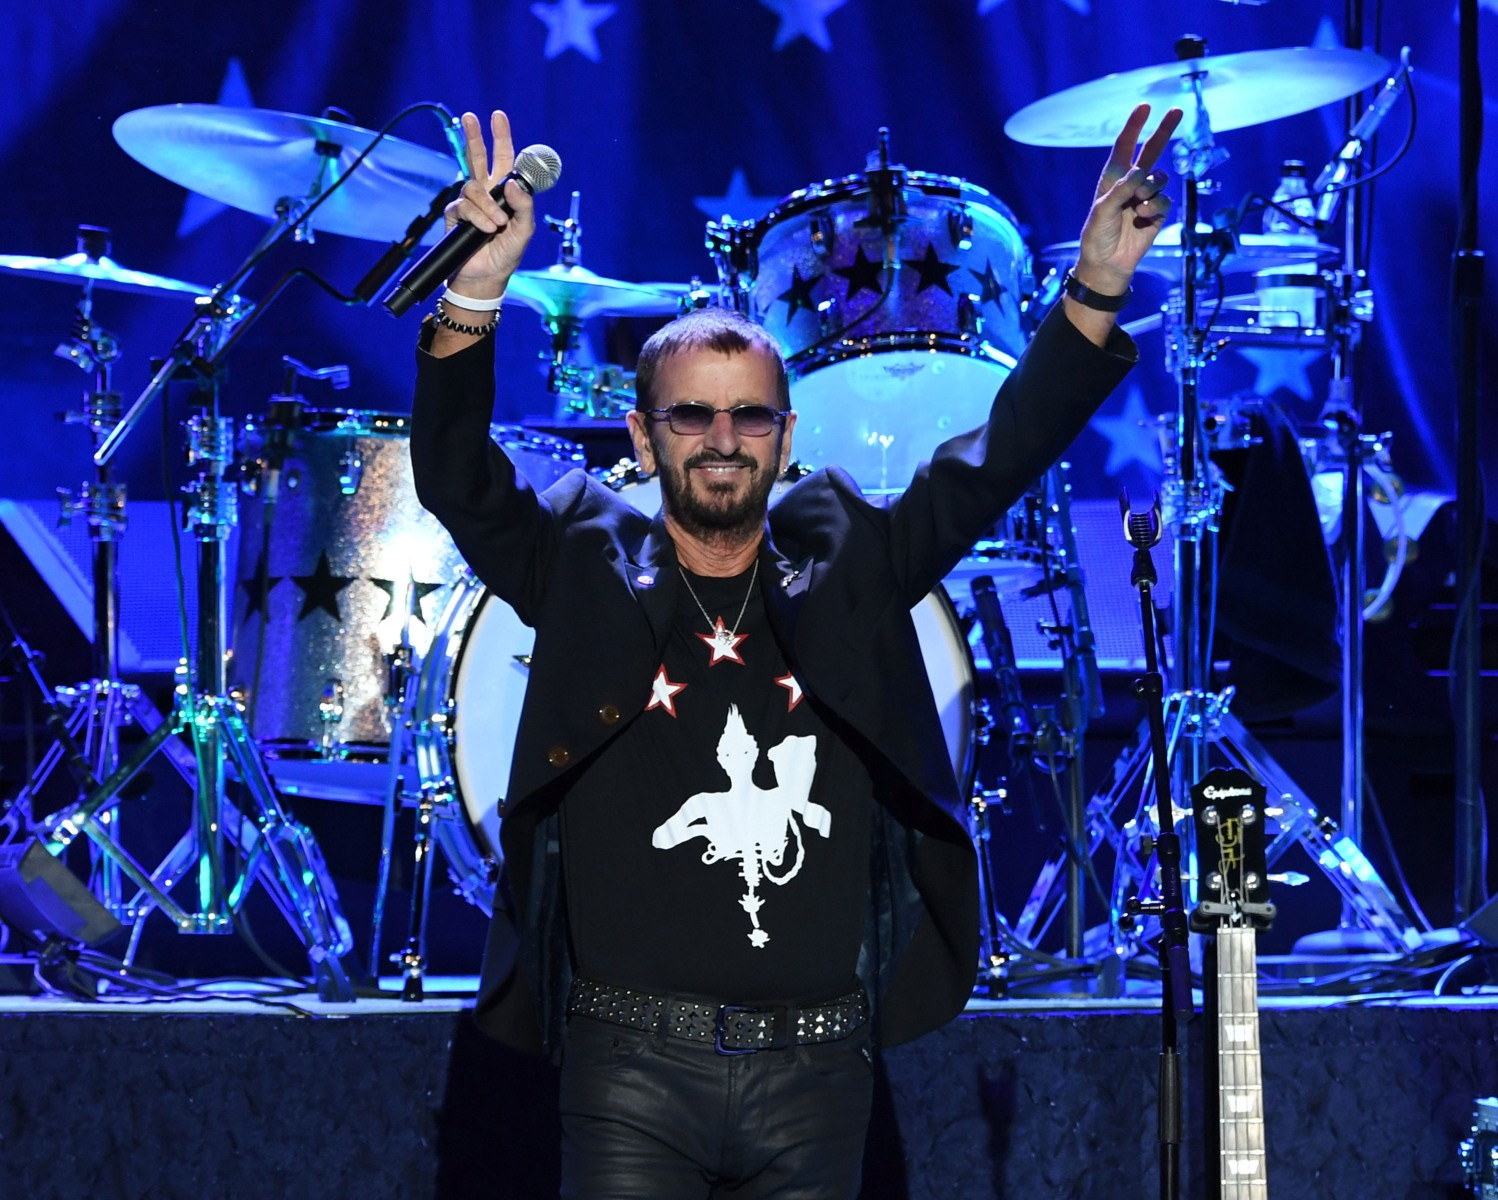 Recording artist Ringo Starr performs at Hollywood Resort & Casino in Las Vegas. (Photo by Denise Truscello/WireImage)